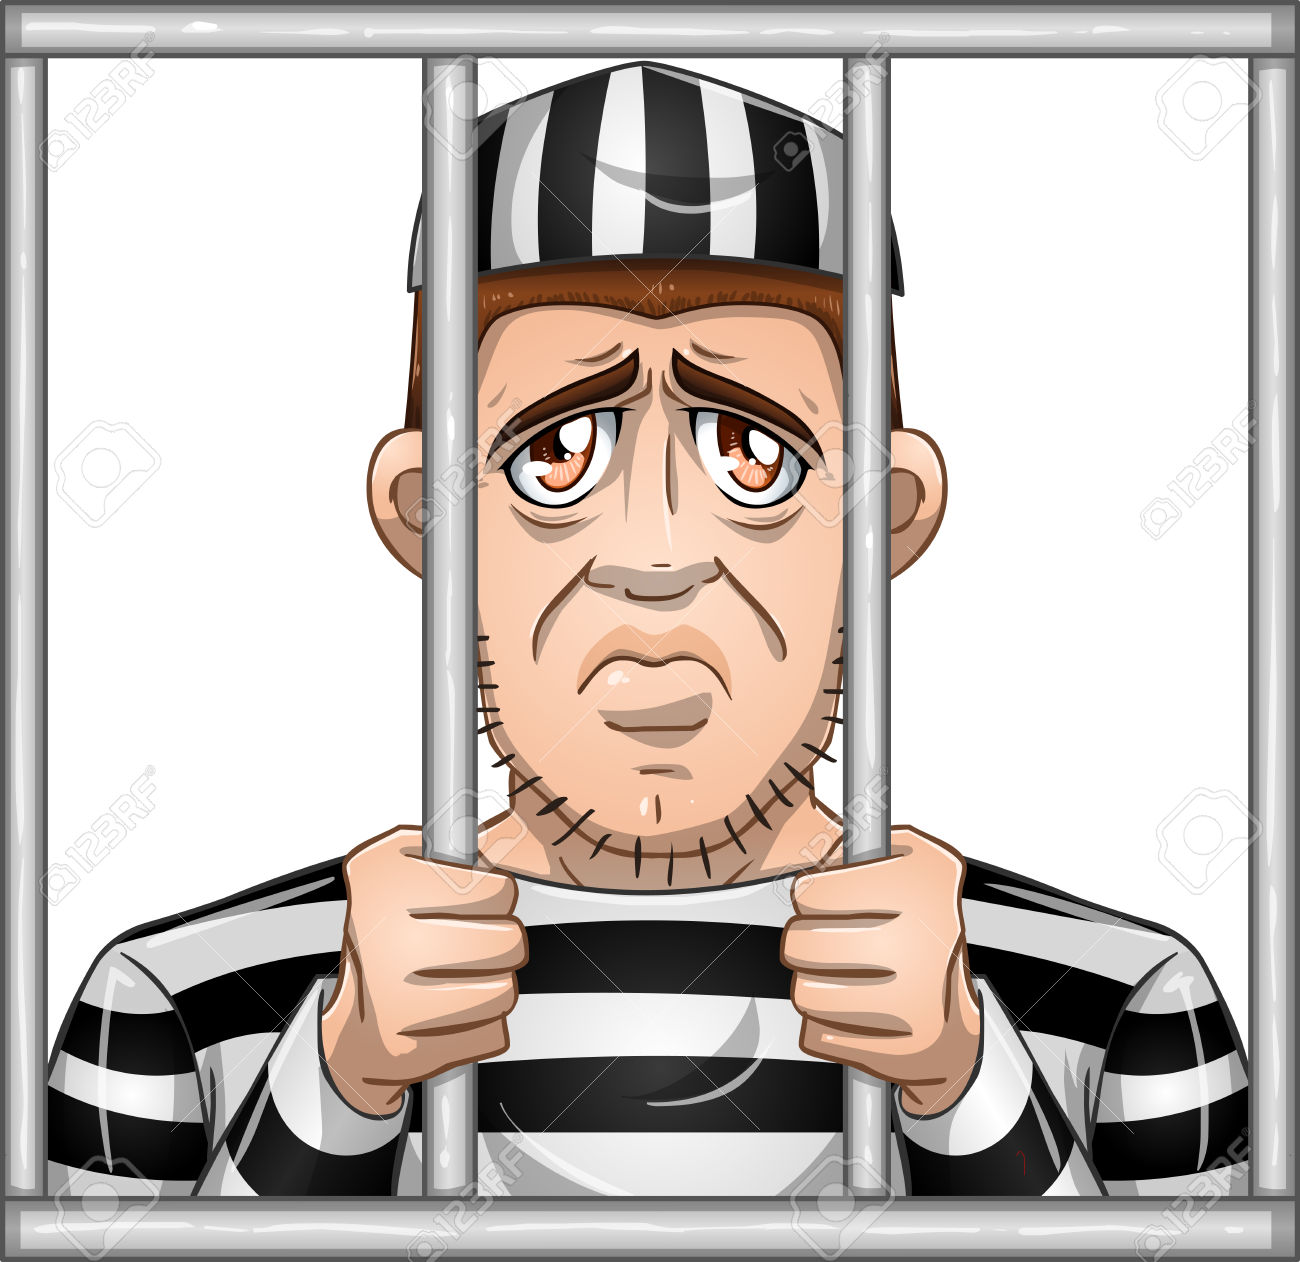 Prisoner number stock clipart graphic royalty free download 6,745 Prisoner Stock Illustrations, Cliparts And Royalty Free ... graphic royalty free download